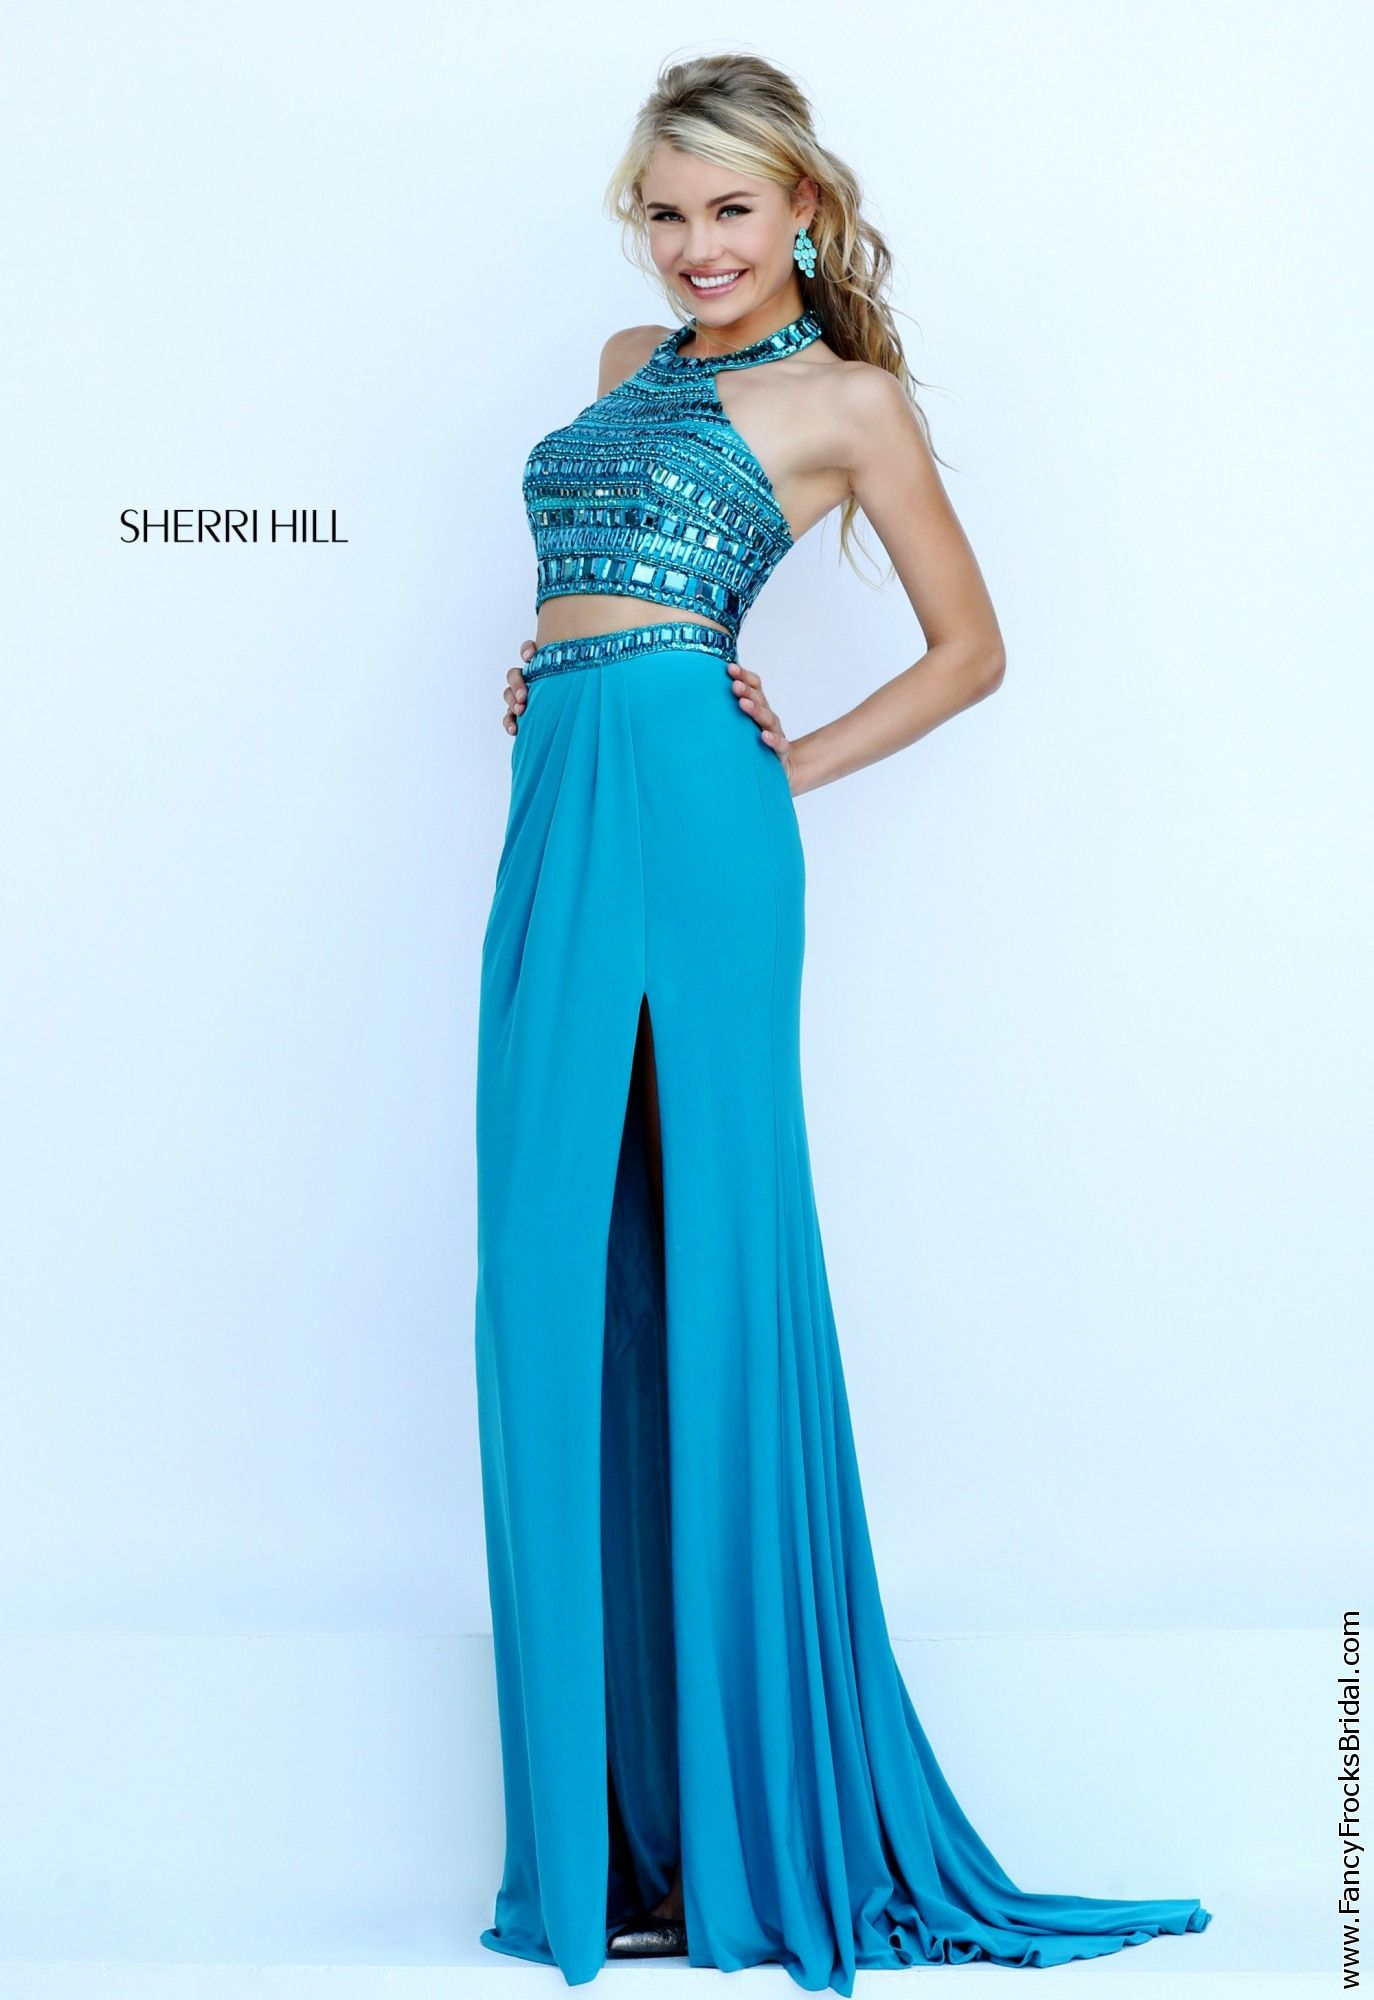 SHFABGJ Sizes: 00-12 $398 Available Colors: BLACK/BLUE/CORAL/GREEN ...